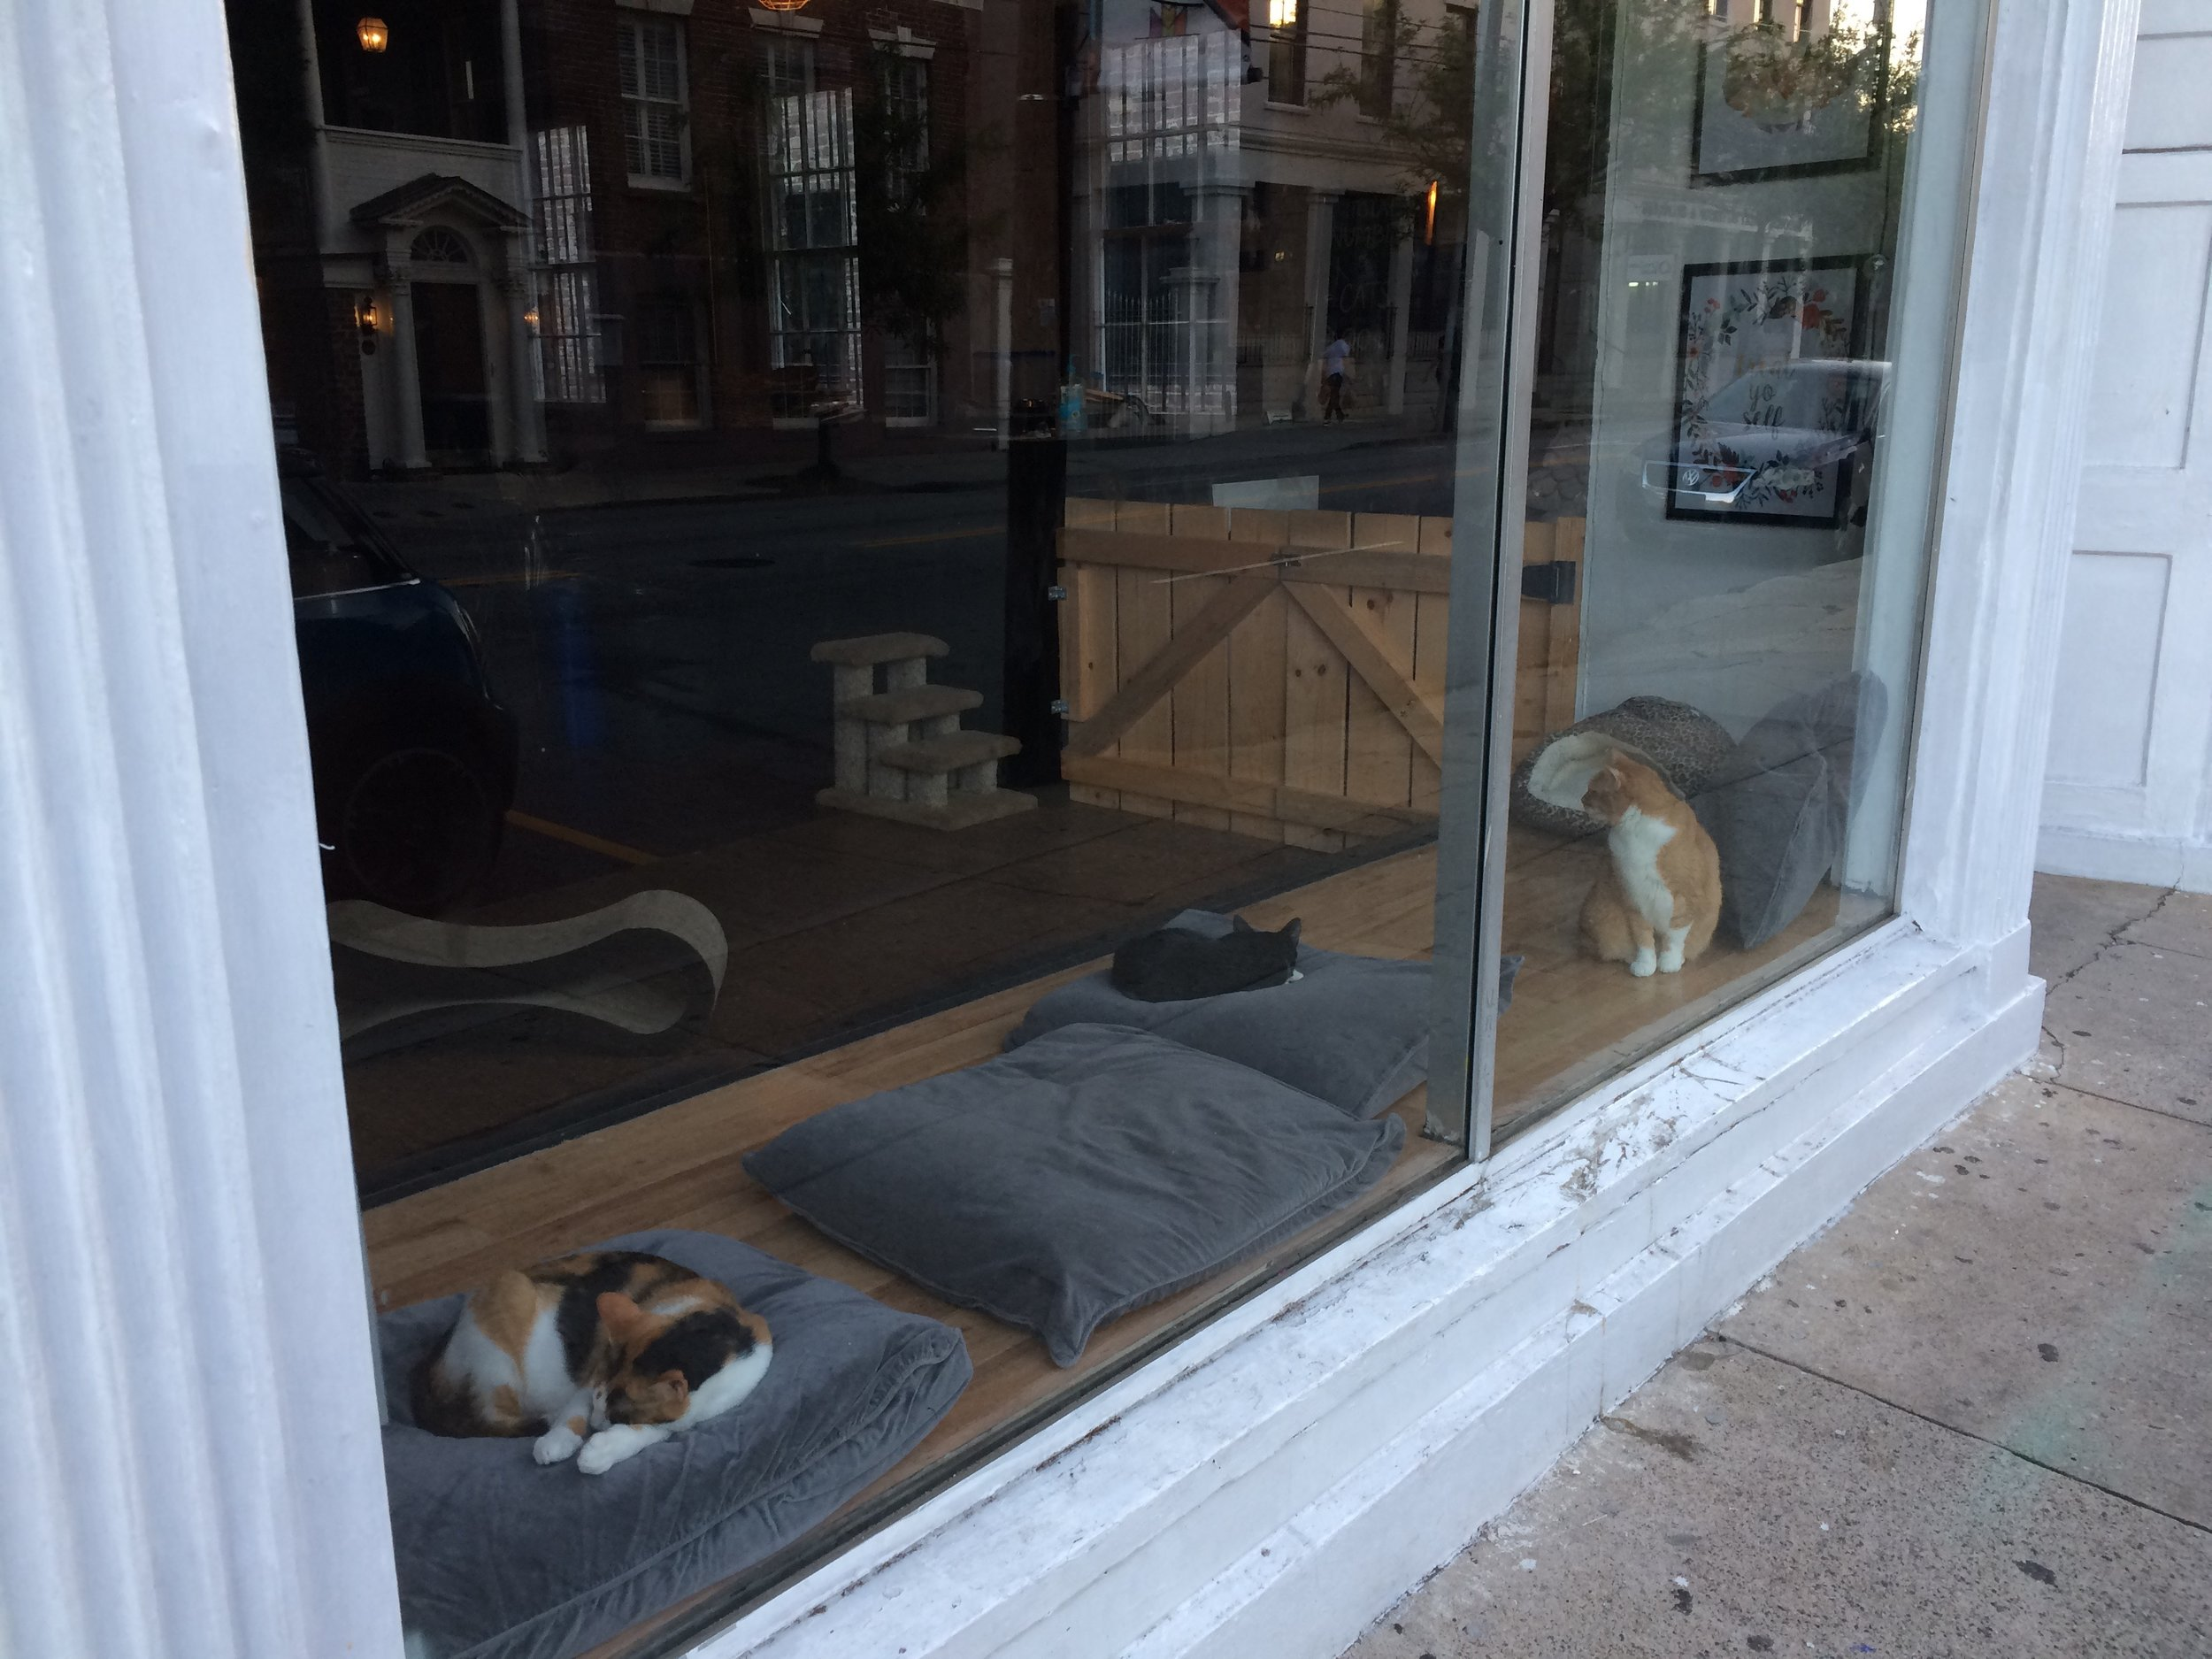 When we walked past it on the way back to our apartment, one of the kitties ran up to the window and greeted us. I think they must be lonesome when the cafe is closed.